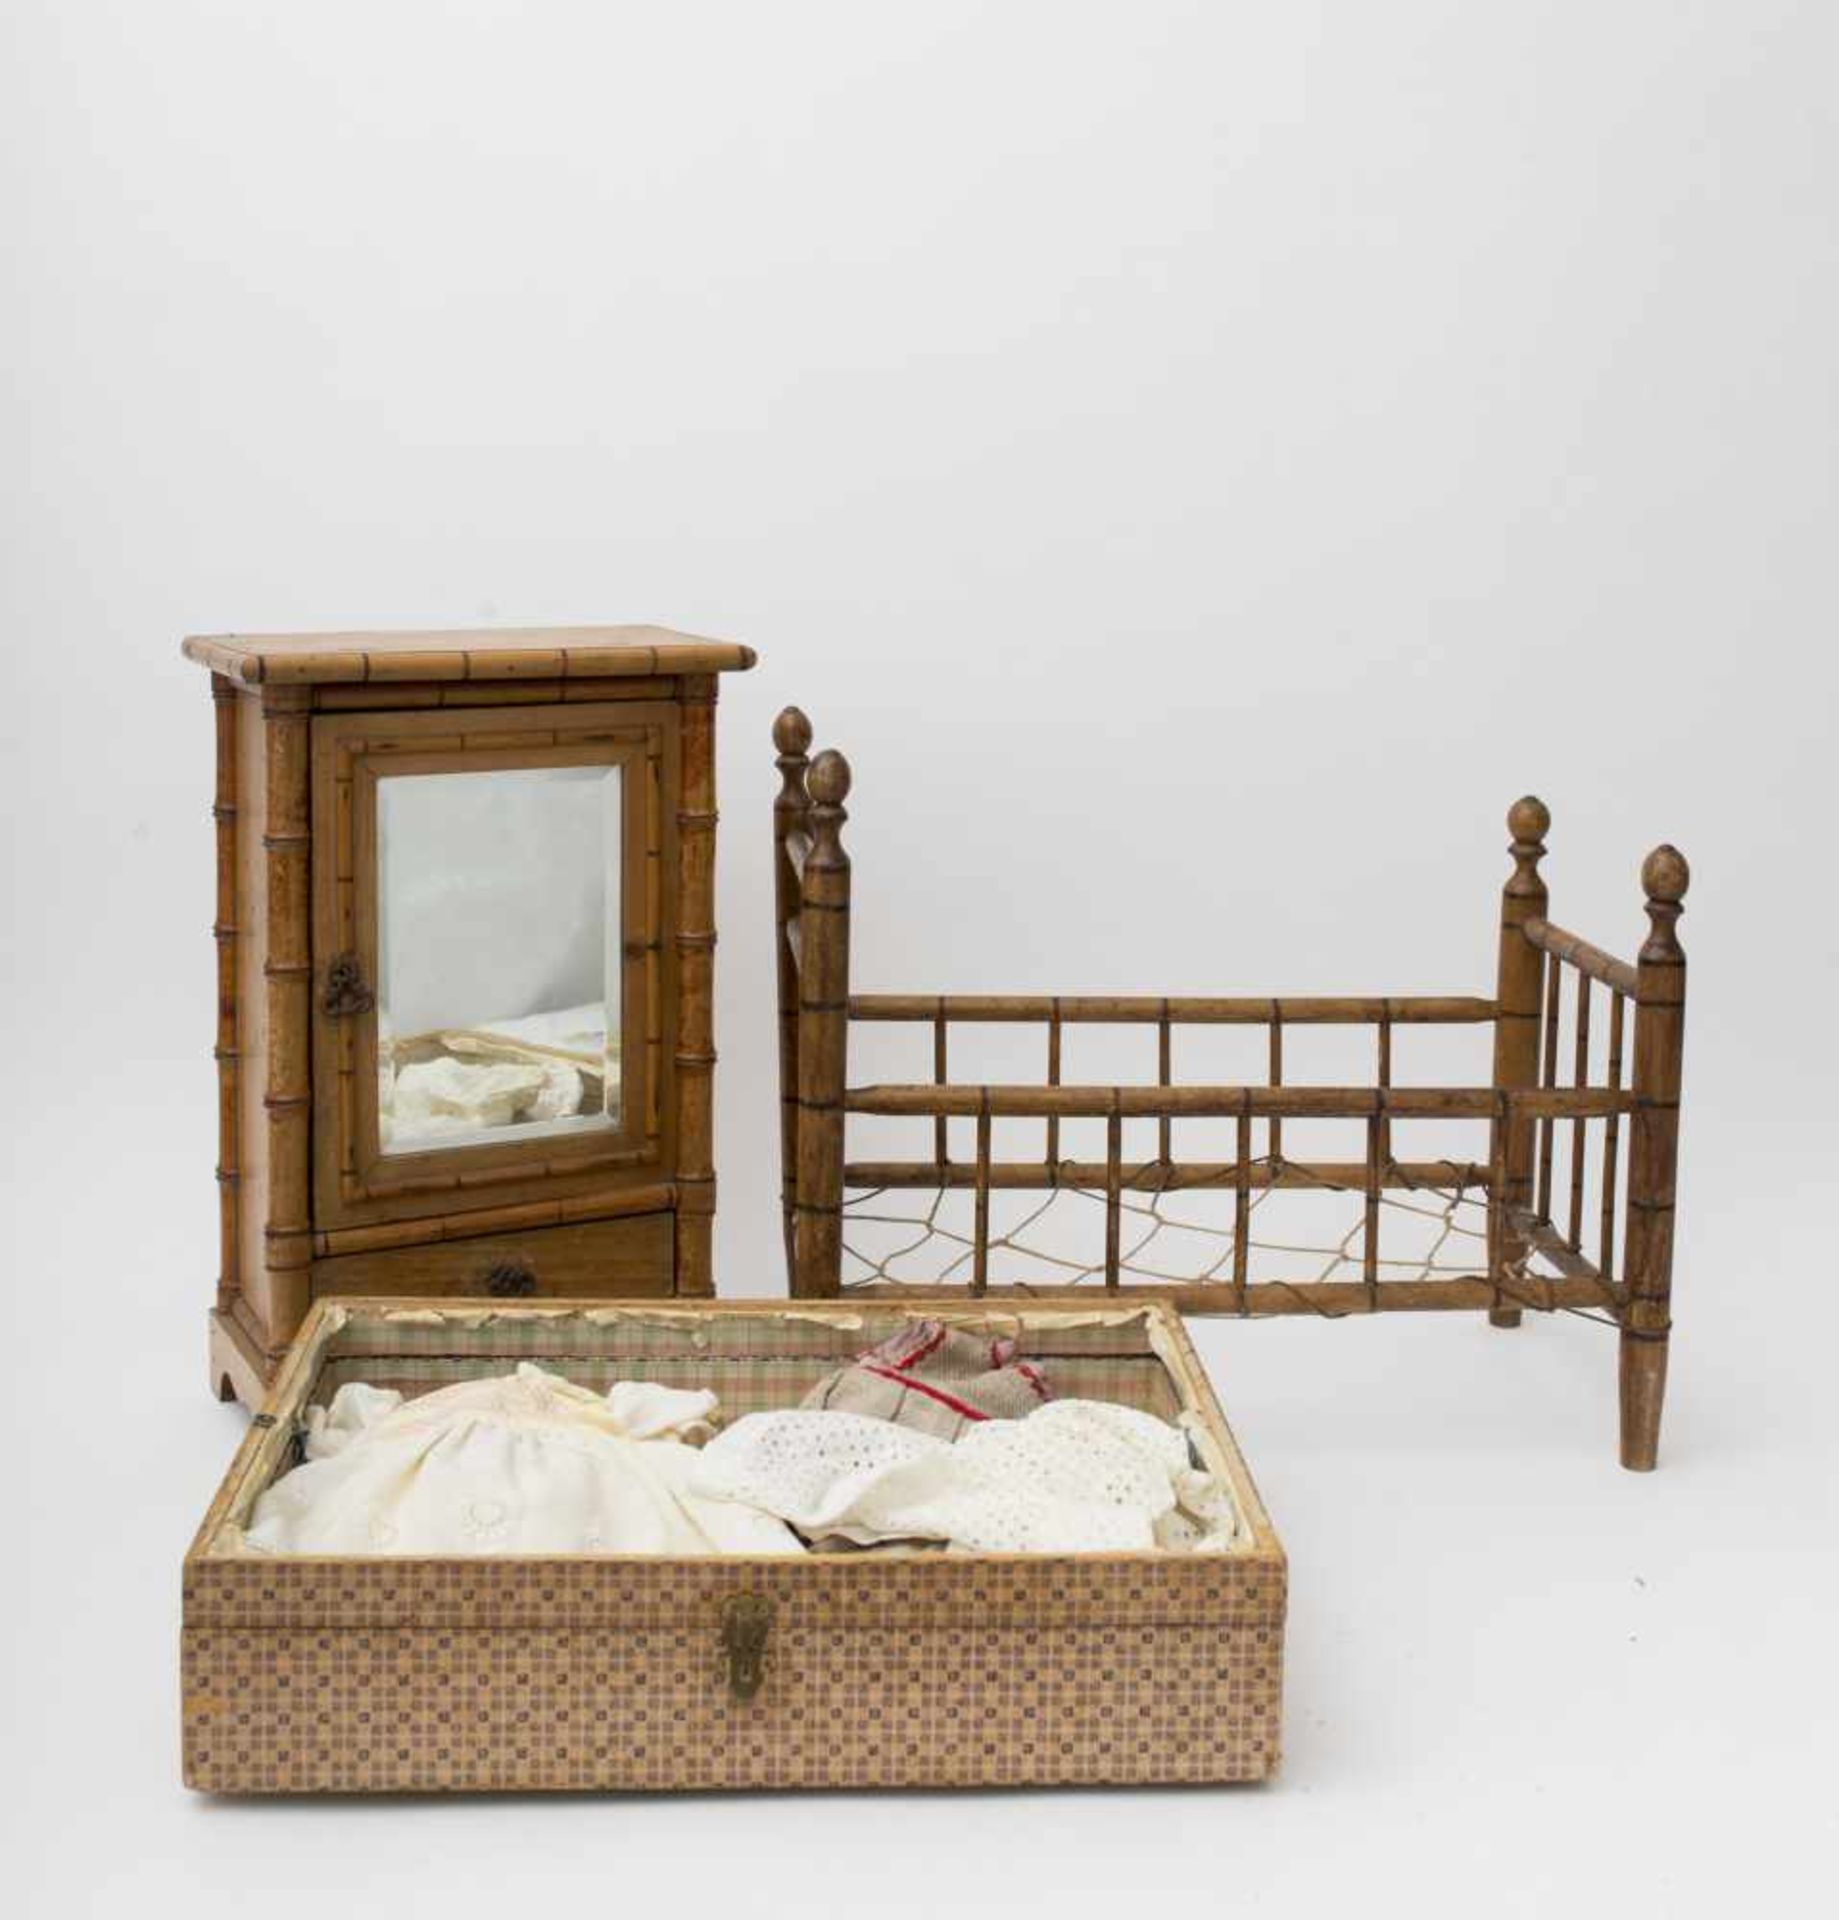 Set Comprised of doll dresses 7-8 – bed (43 x 24 x 32) and wardrobe (41 x 25 x 14) made of bamboo-